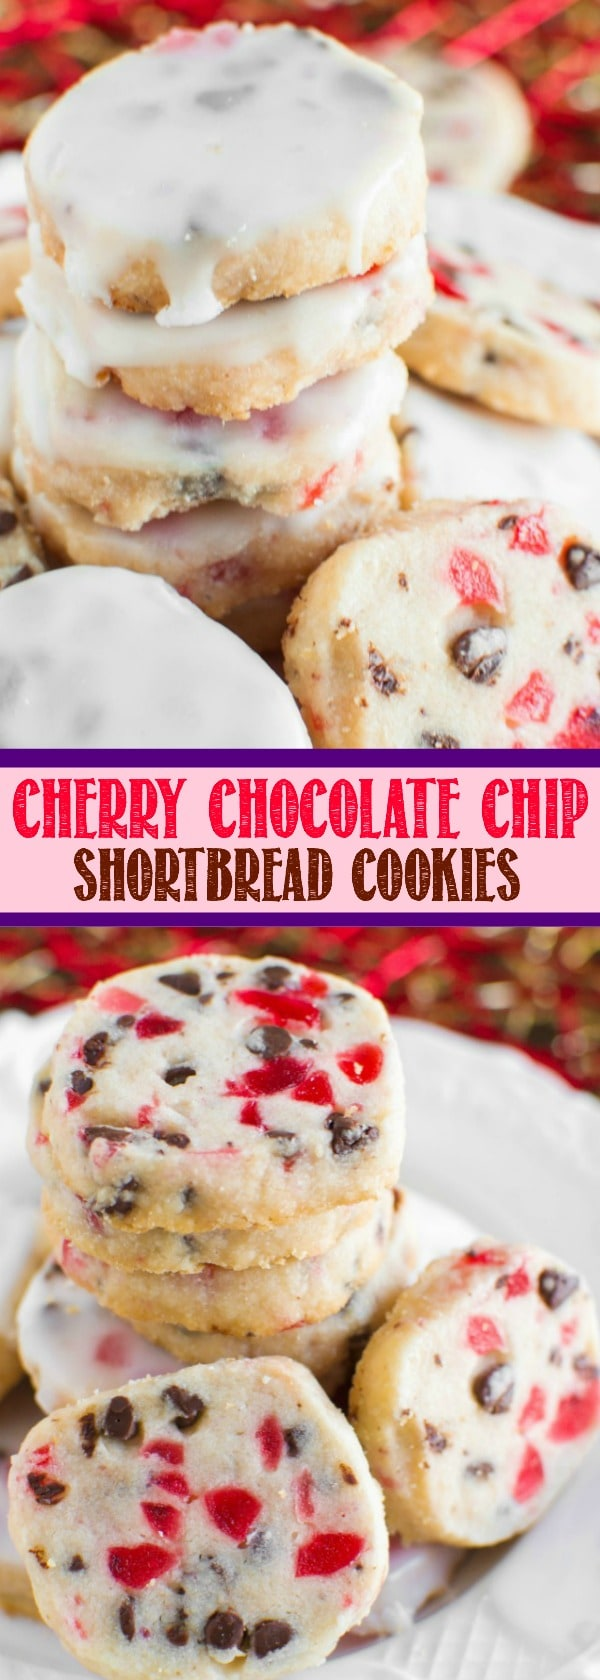 INCREDIBLE Glazed Cherry Chocolate Chip Shortbread Cookies